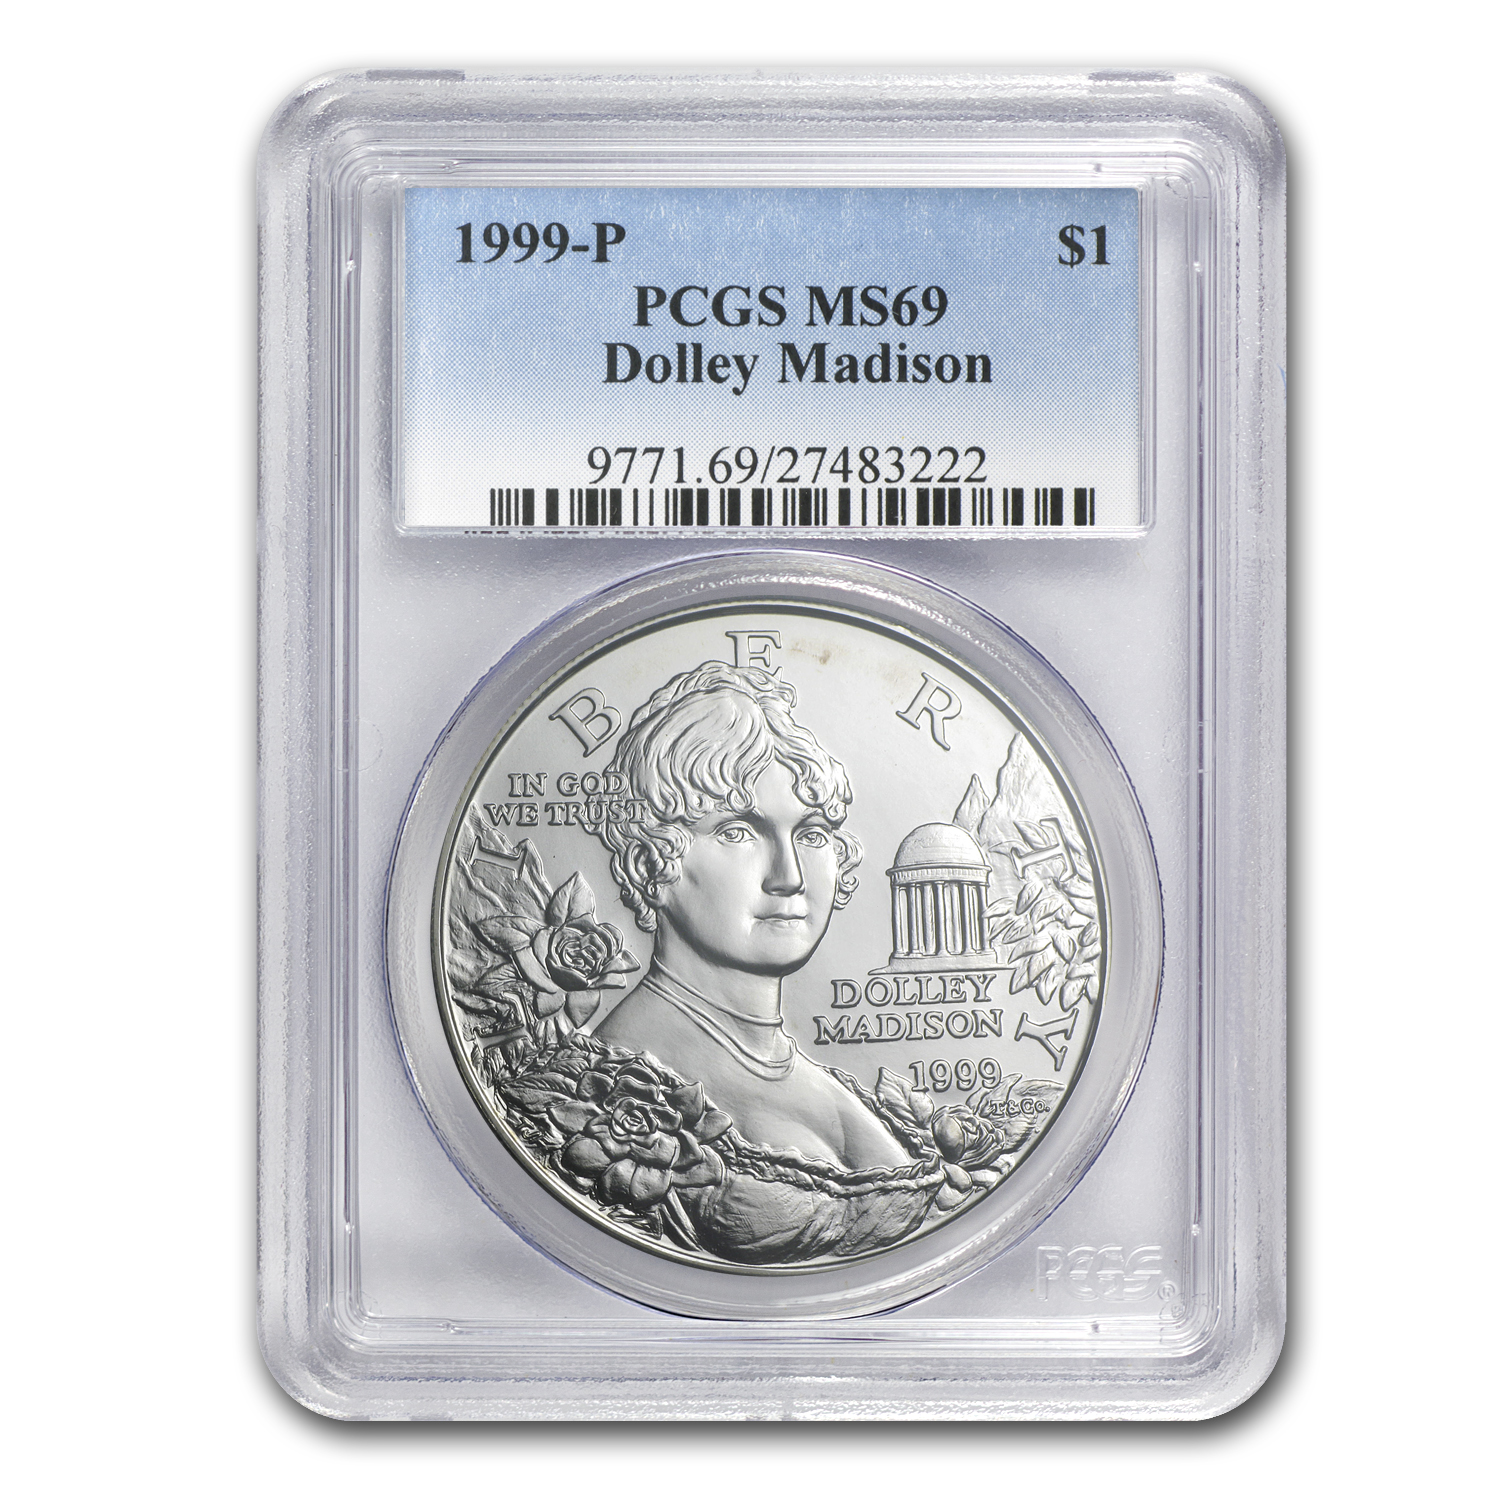 1999-P Dolley Madison $1 Silver Commem MS-69 PCGS